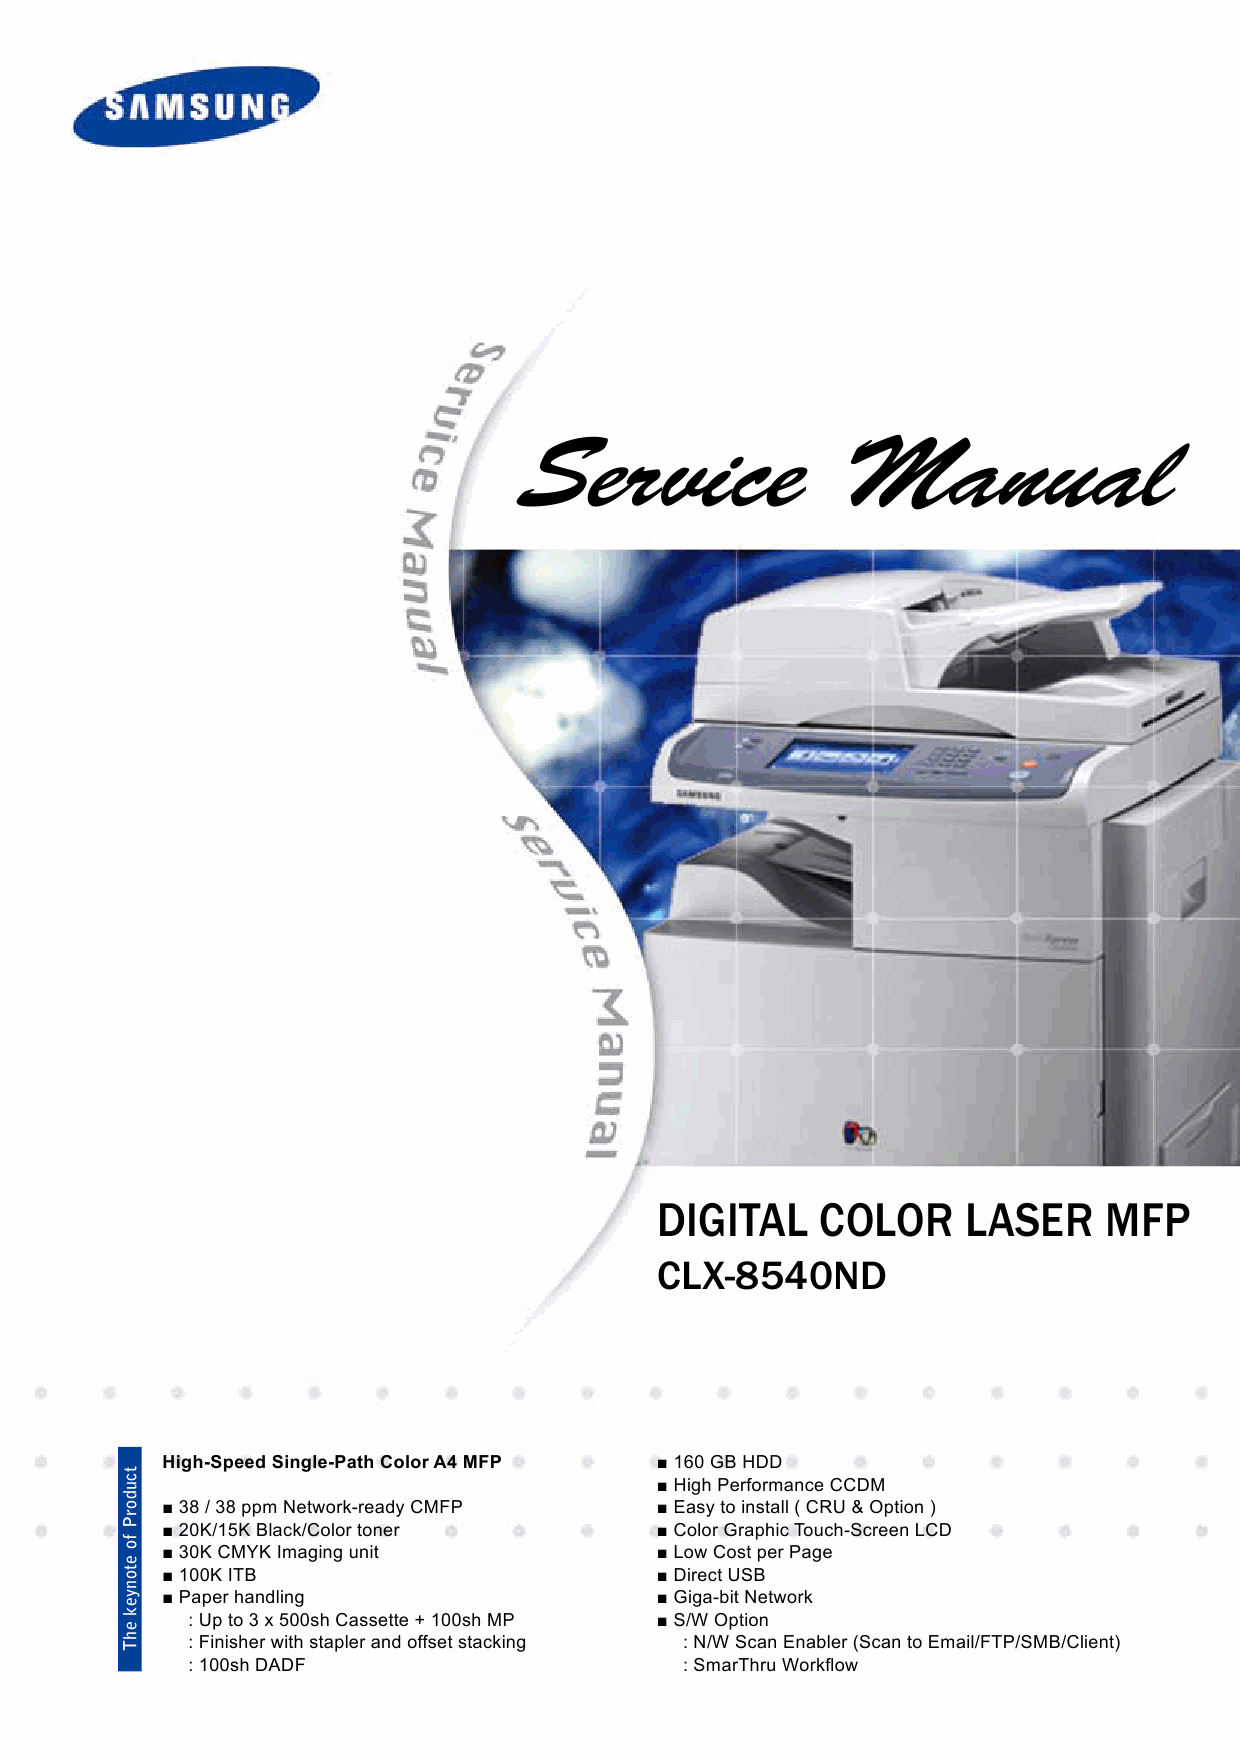 Samsung Digital-Color-Laser-MFP CLX-8540ND Parts and Service Manual-1